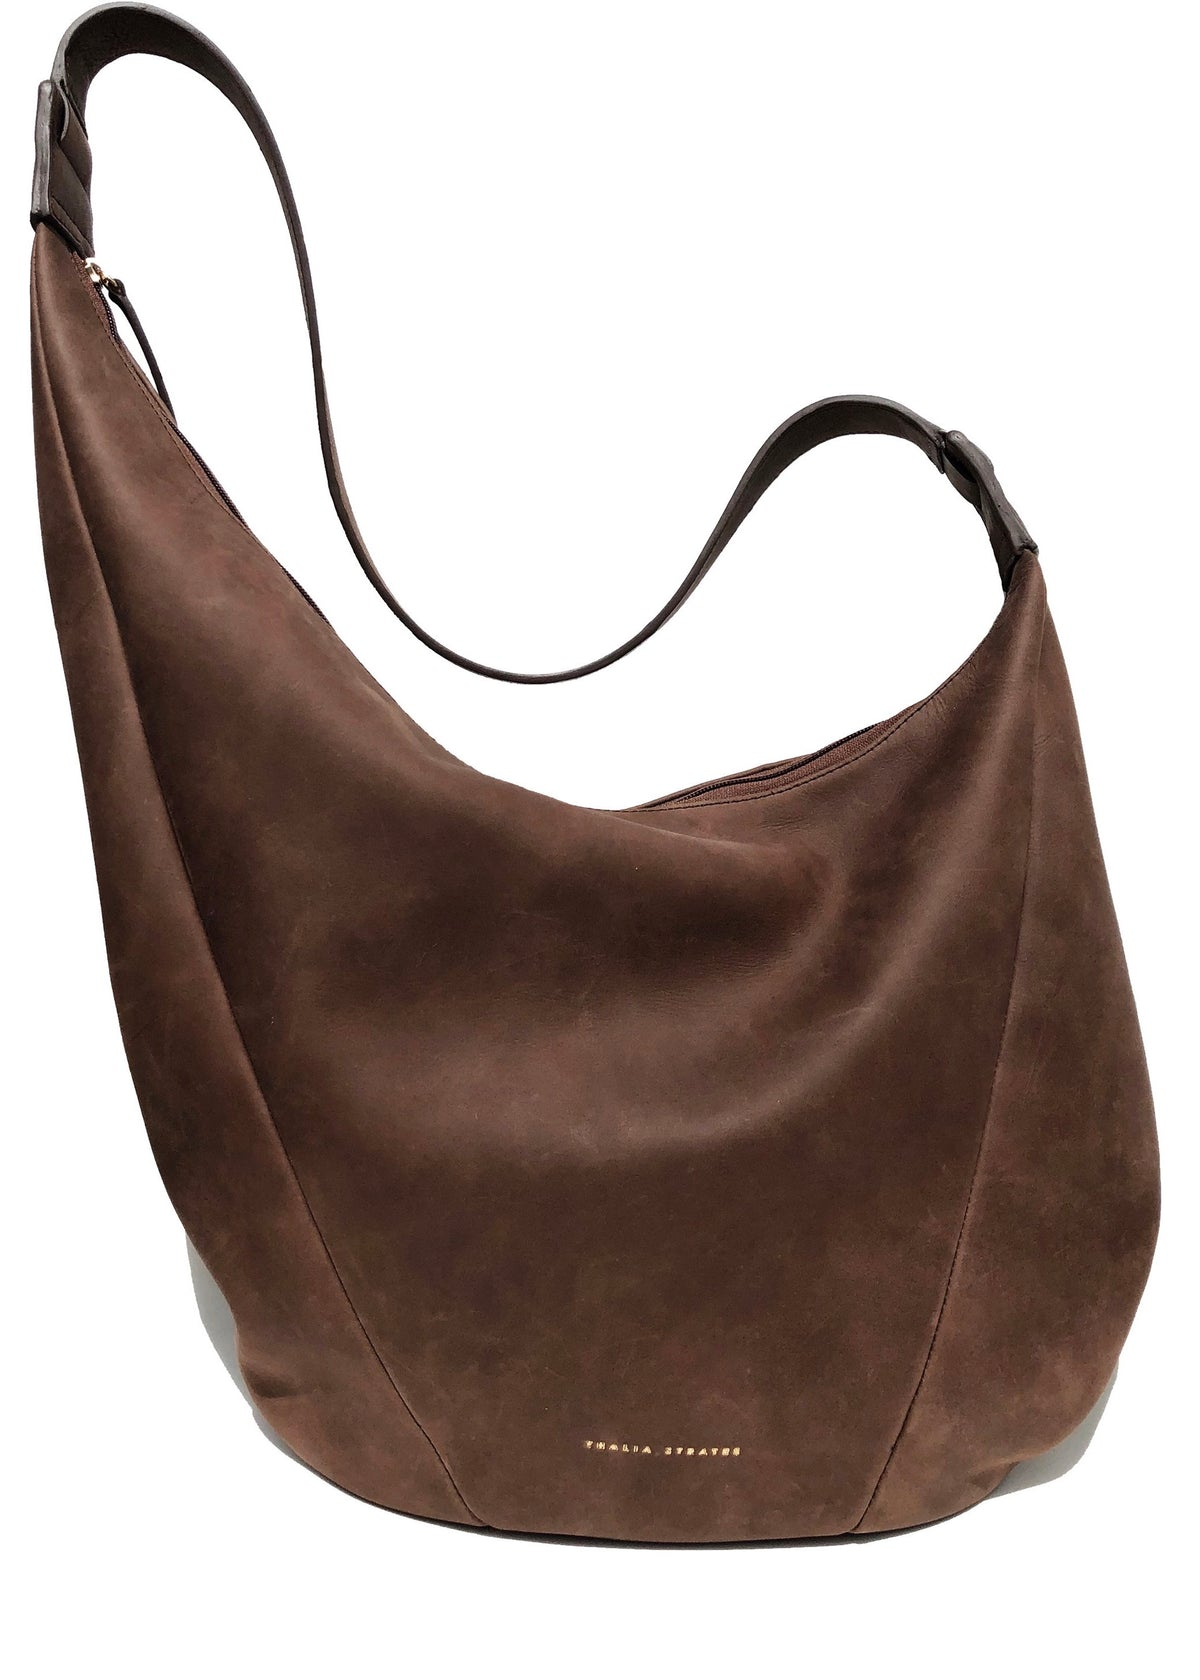 Thalia Strates slouchy soft leather bag